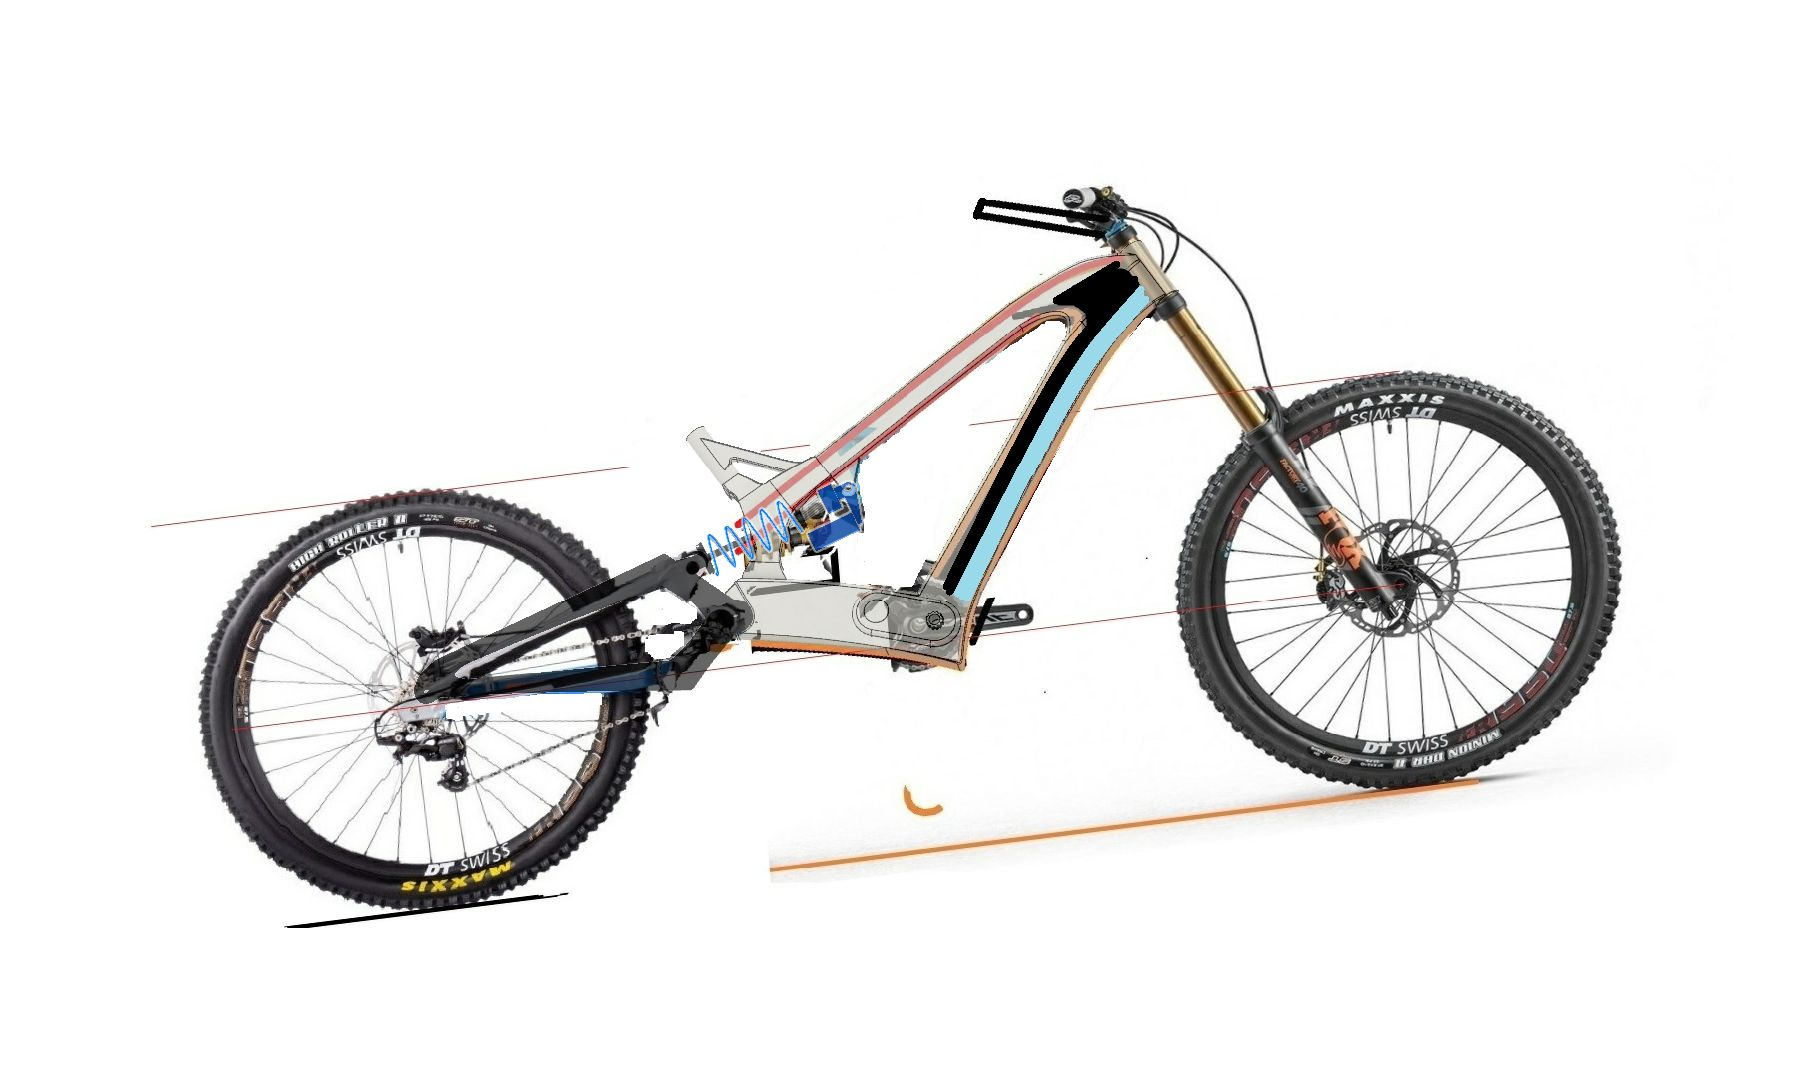 Composite-image-of-the-frame-and-downhill-bike-parts-for-design-3500-3500